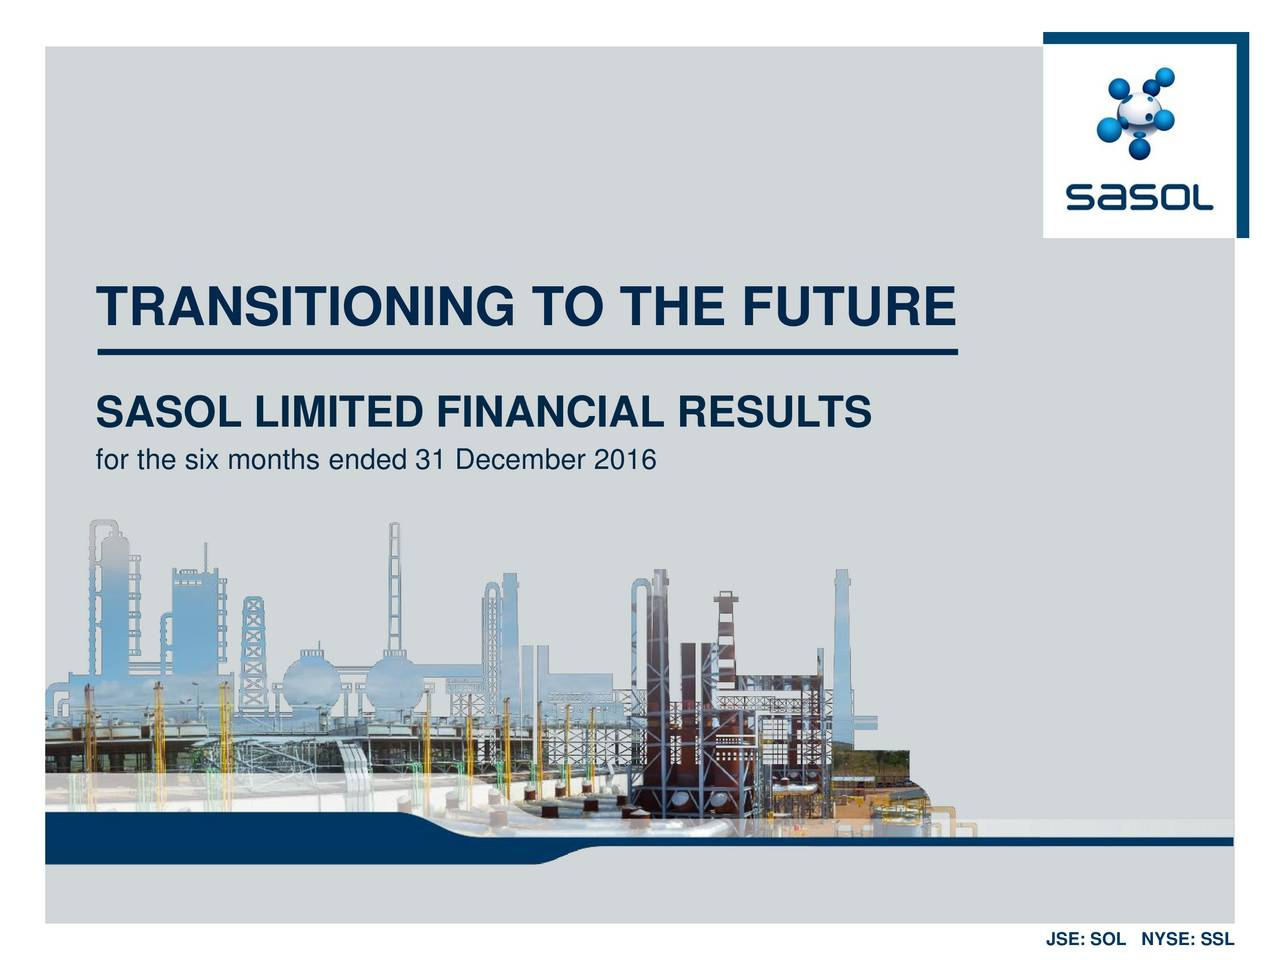 SASOL LIMITED FINANCIAL RESULTS for the six months ended 31 December 2016